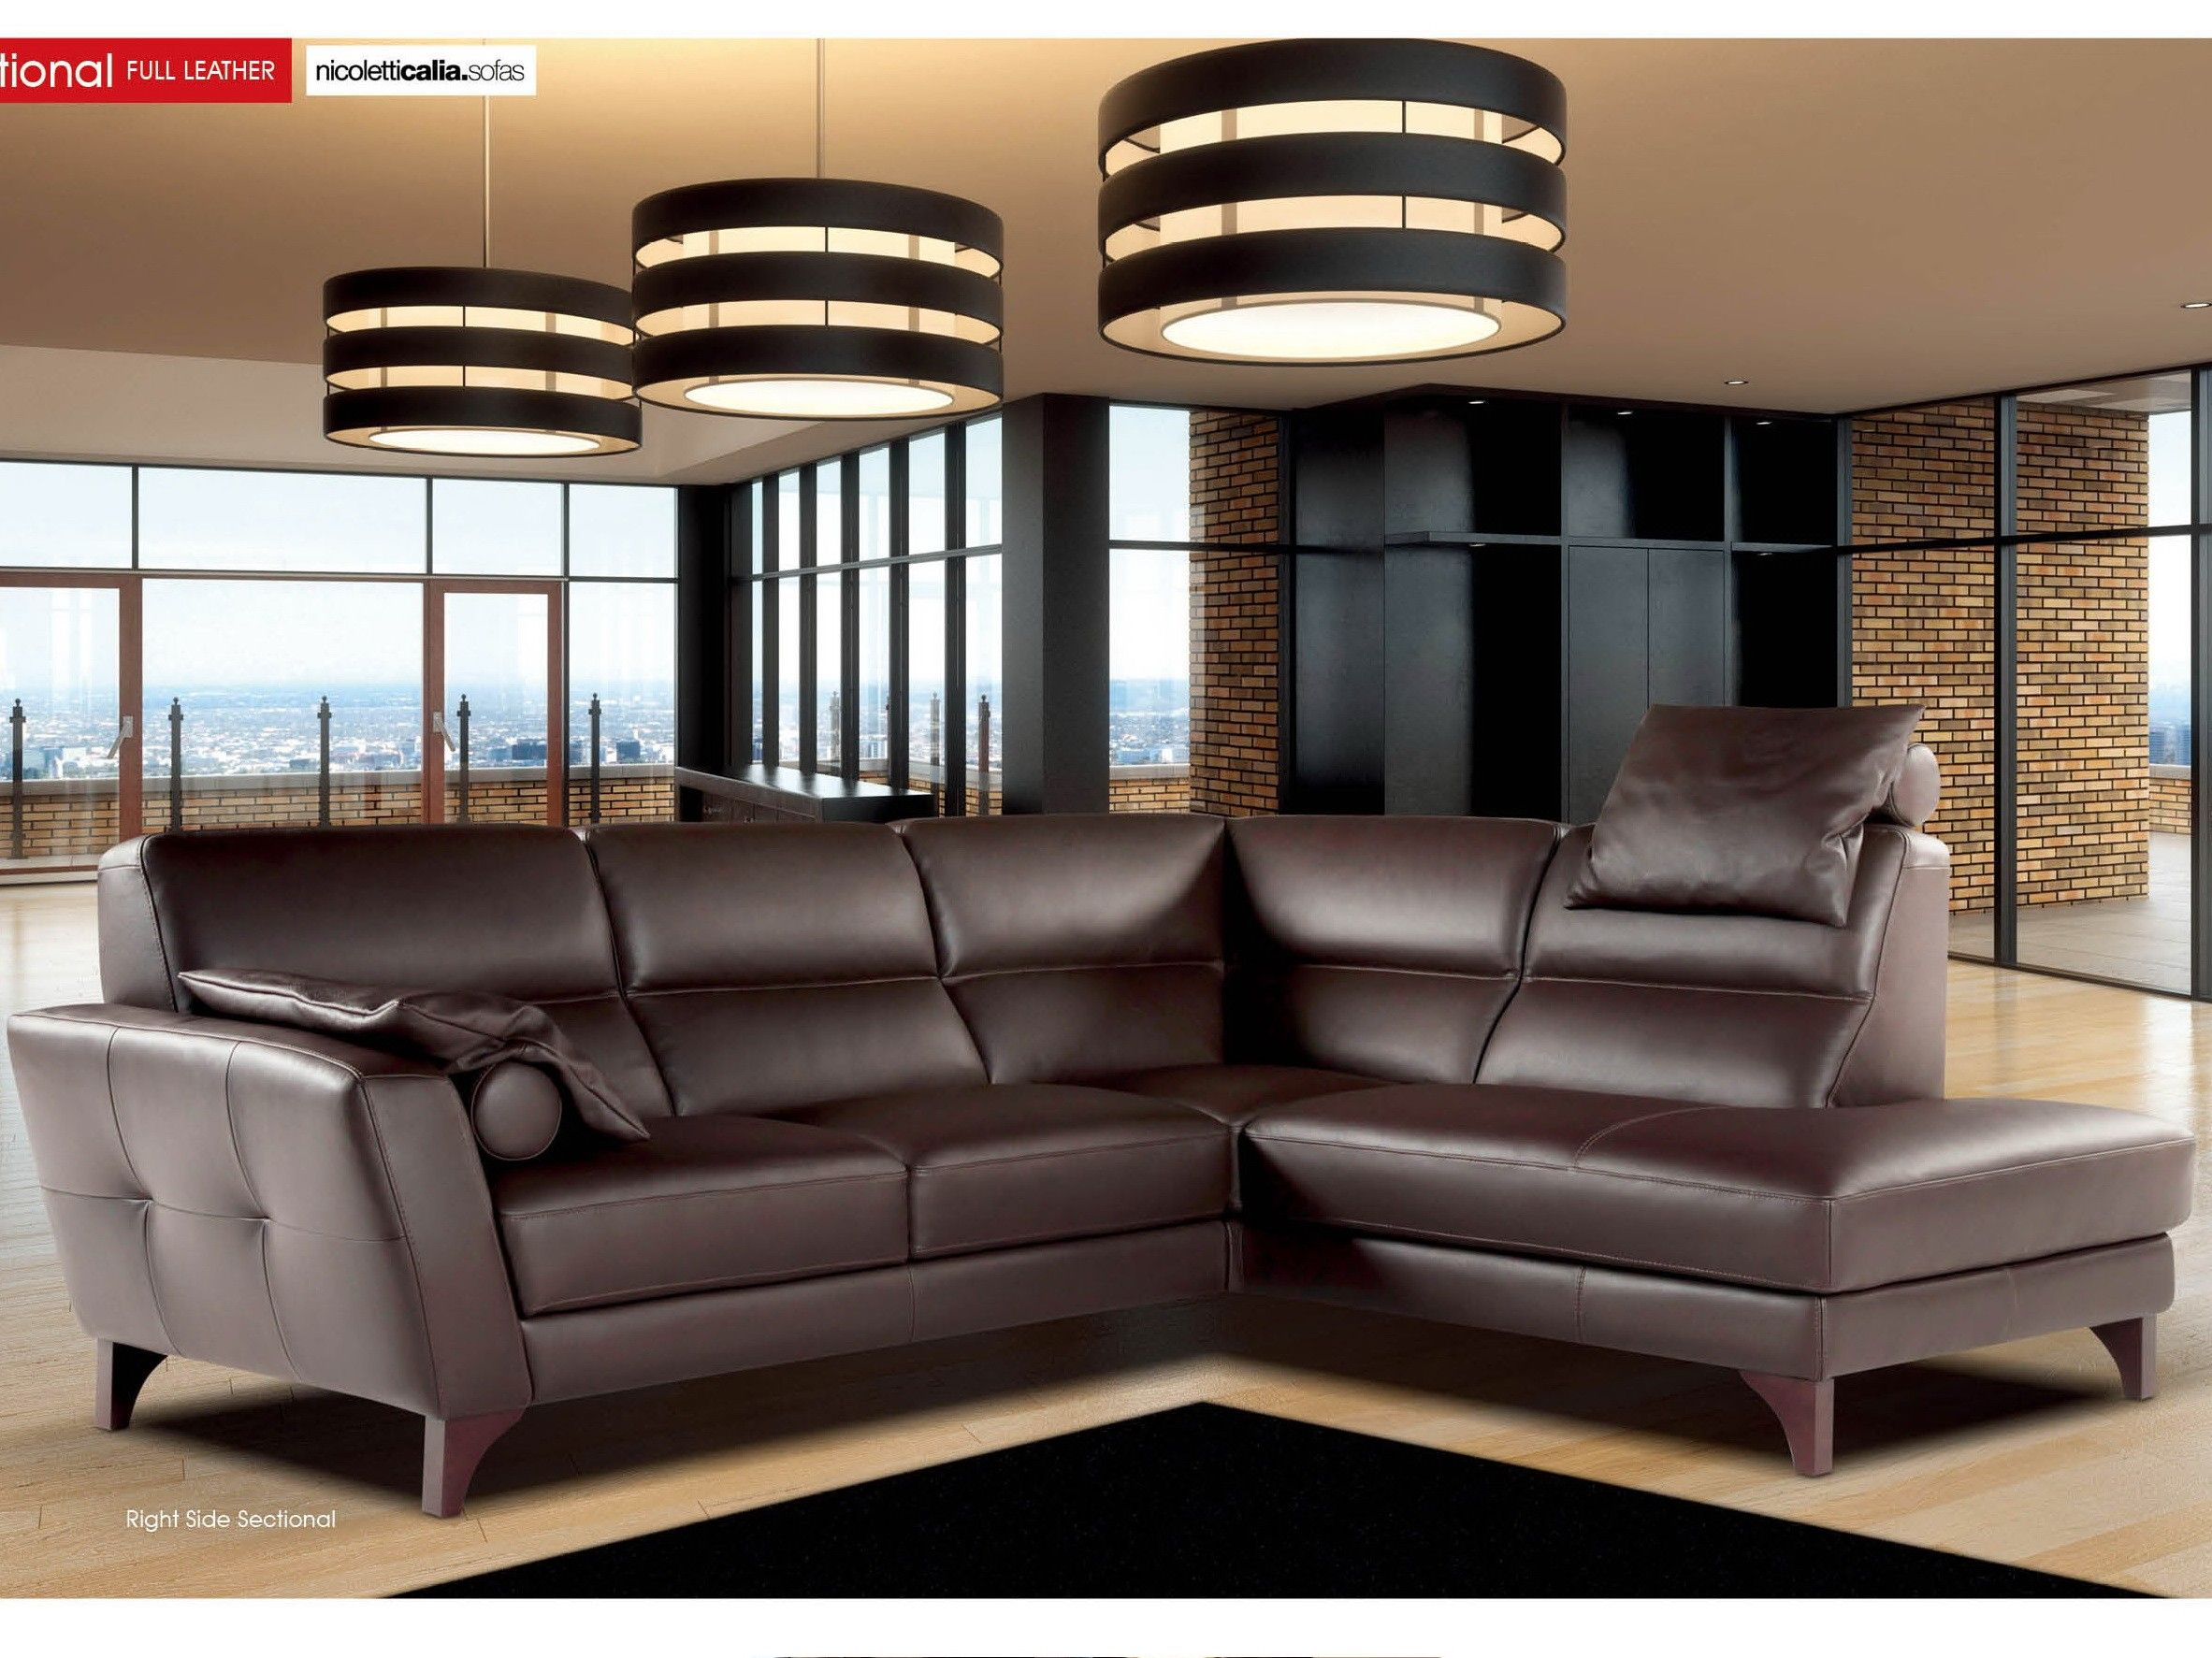 Astounding Nicoletti Evelin Sectional Sectionals Brown Sectional Ncnpc Chair Design For Home Ncnpcorg